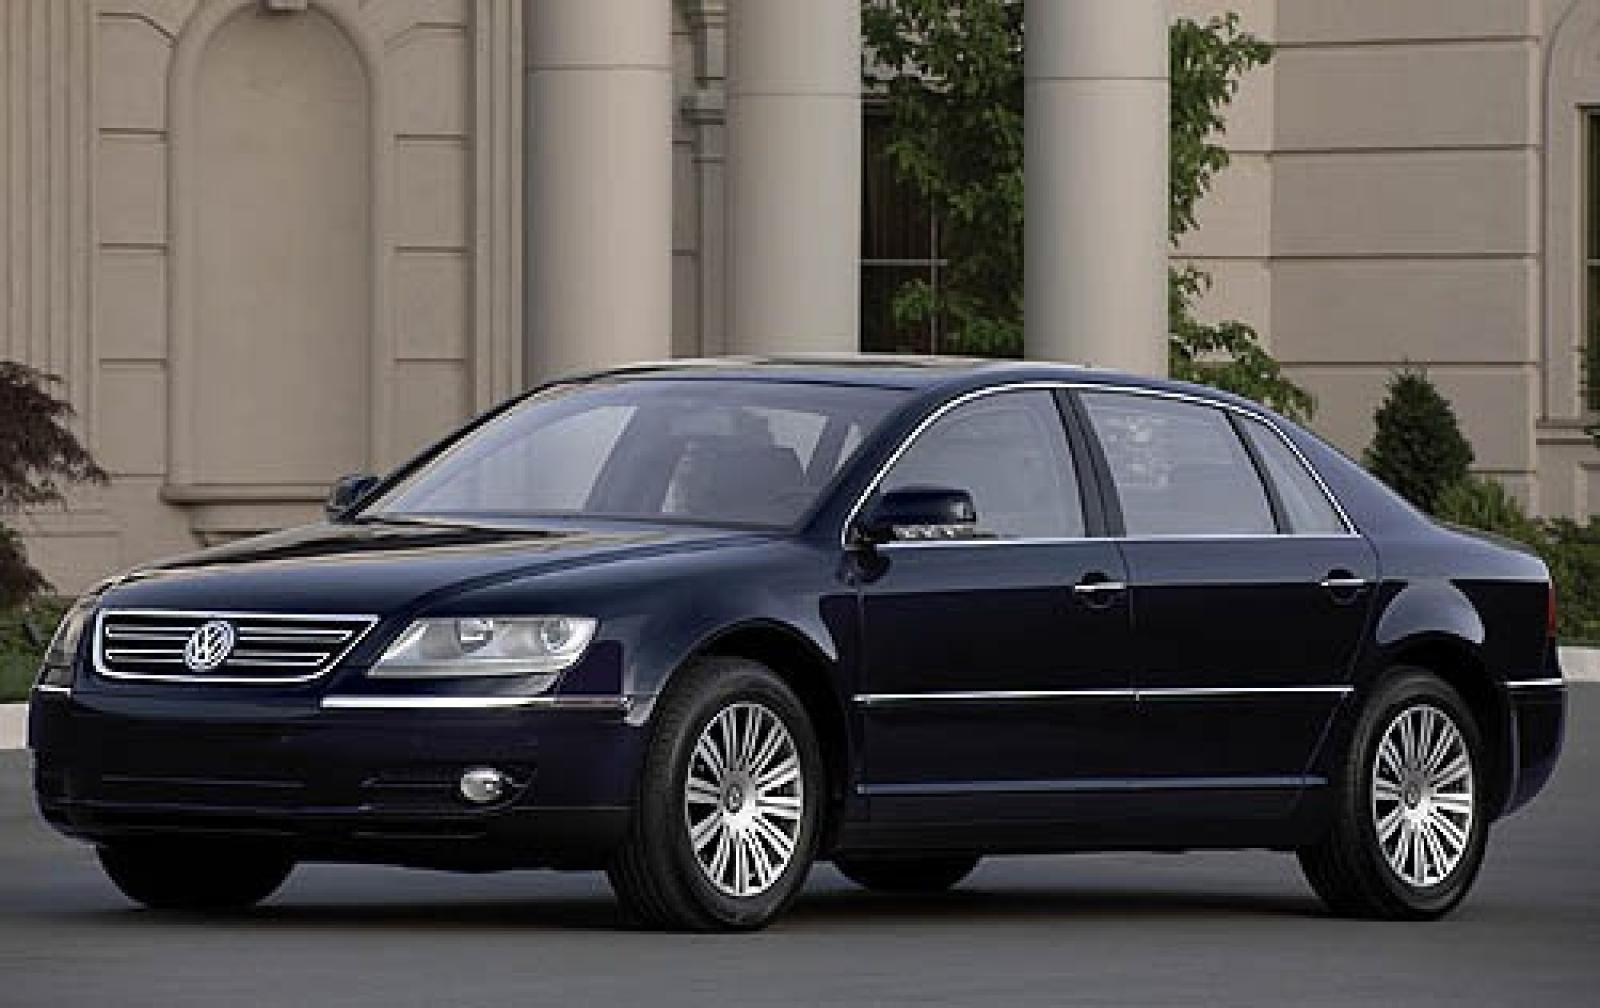 2006 volkswagen phaeton information and photos zombiedrive. Black Bedroom Furniture Sets. Home Design Ideas